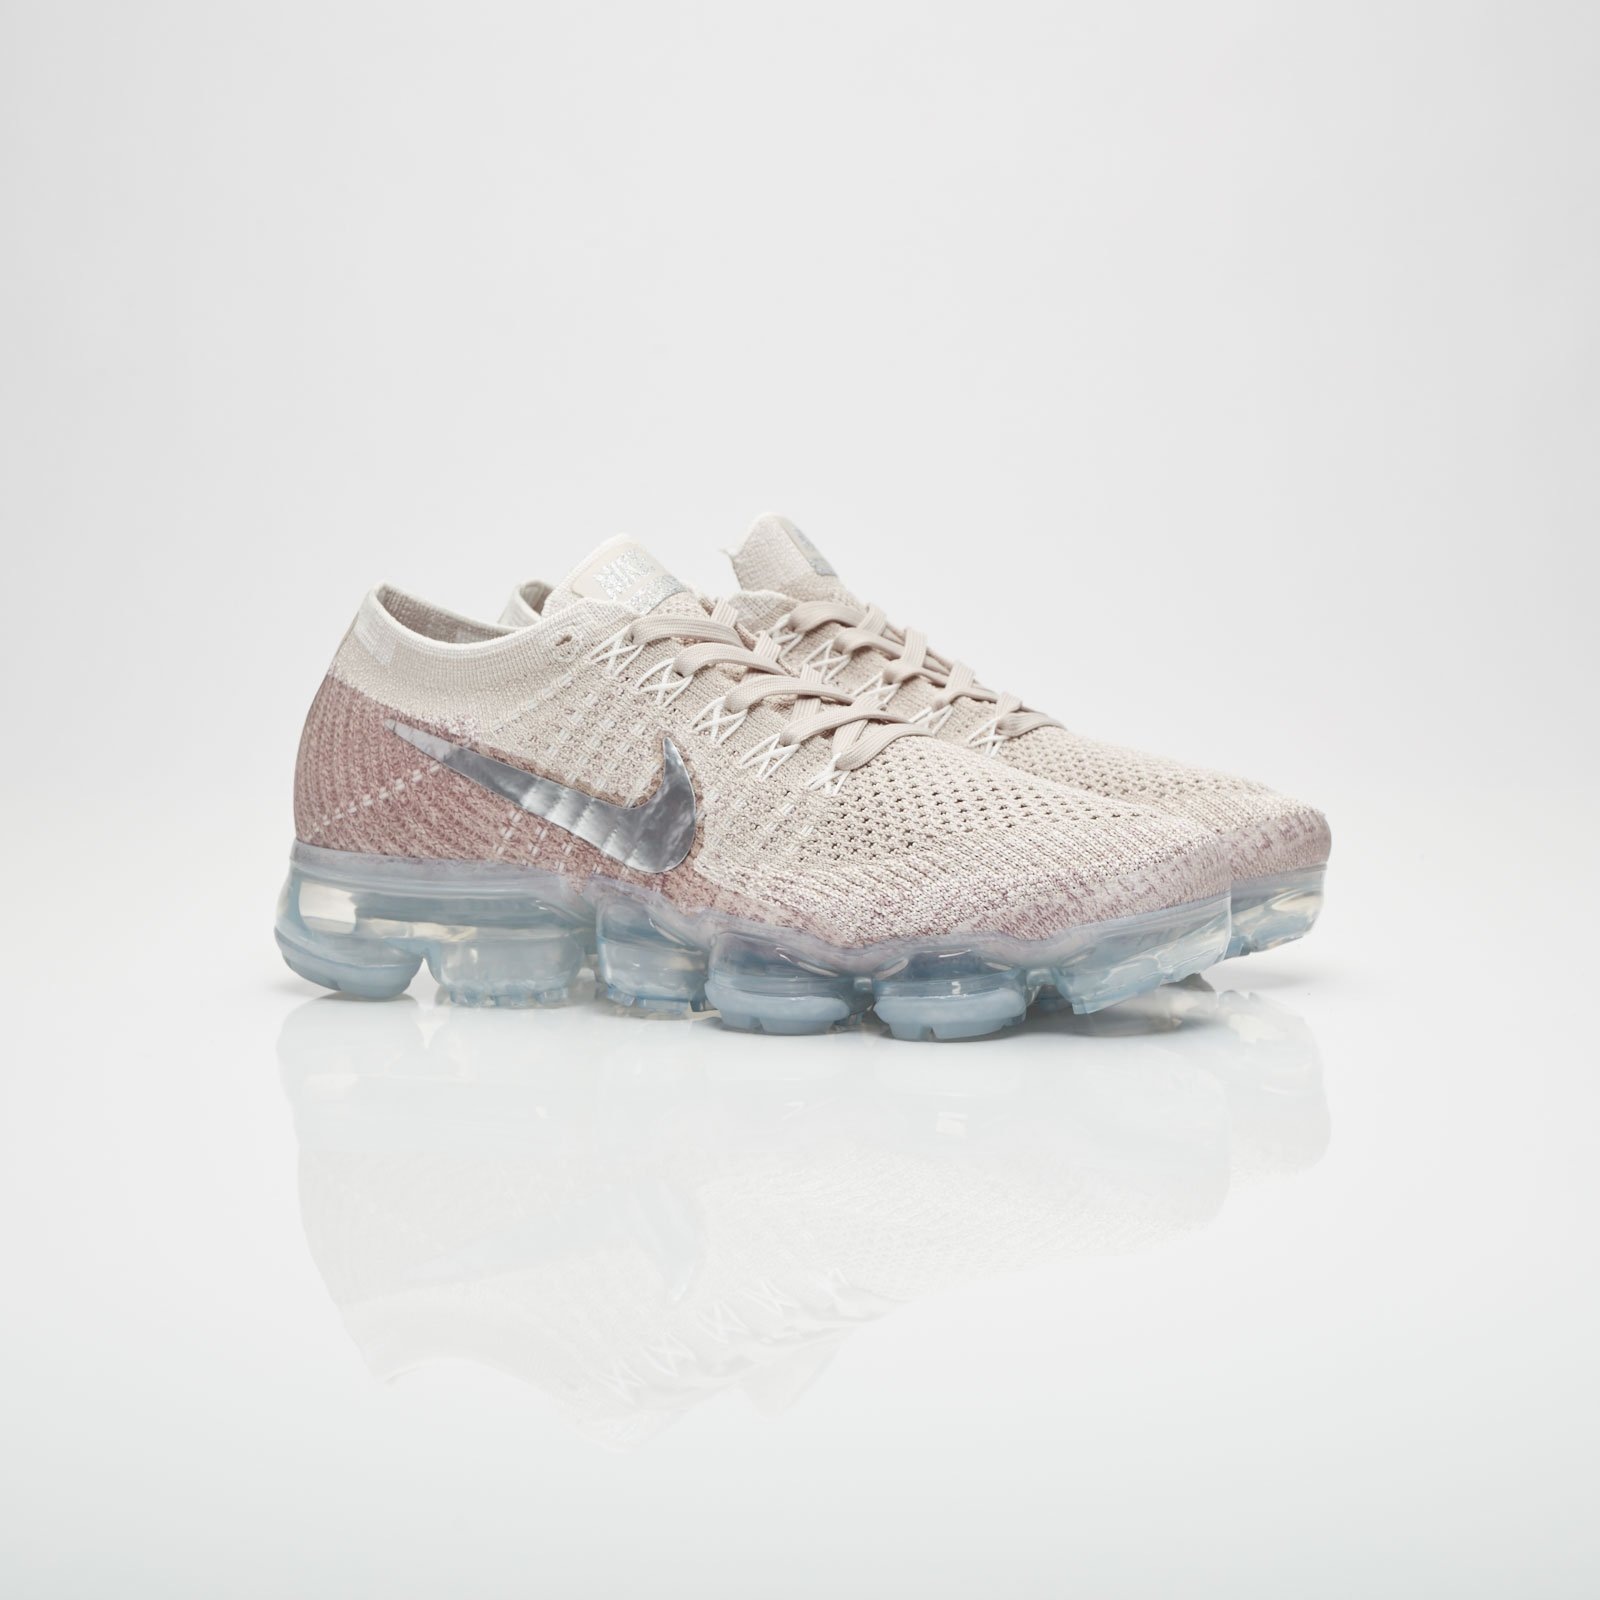 reputable site 49471 6661b Nike Wmns Air Vapormax Flyknit - 849557-202 - Sneakersnstuff ...